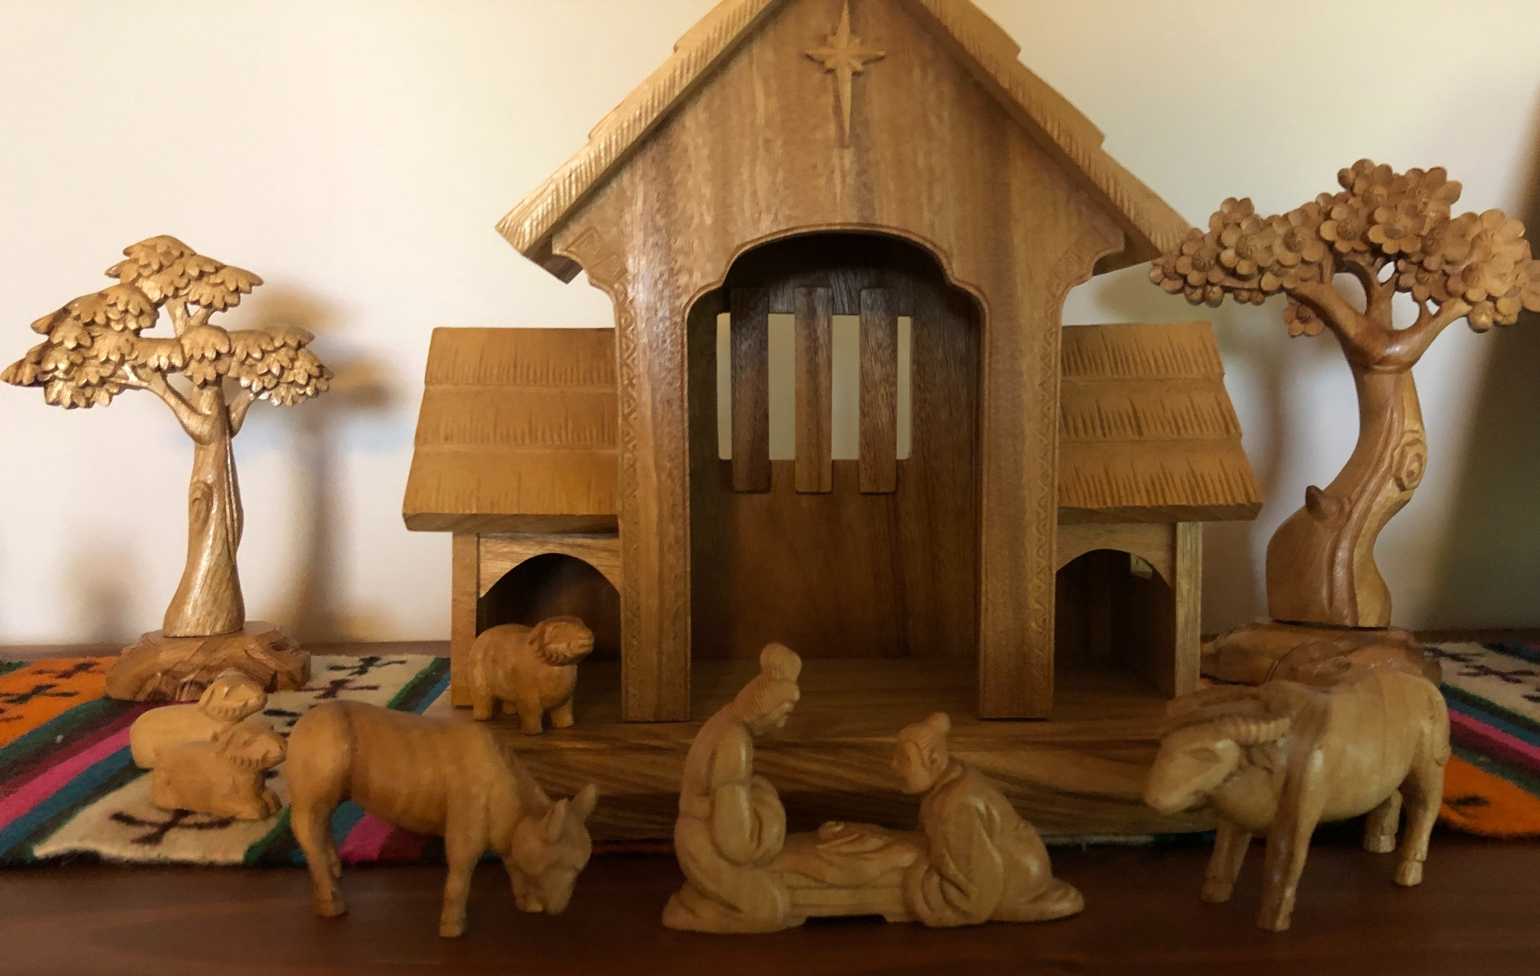 Wooden nativity set showing Mary and Joseph with a baby, accompanied by an oxen, donkey and sheep.